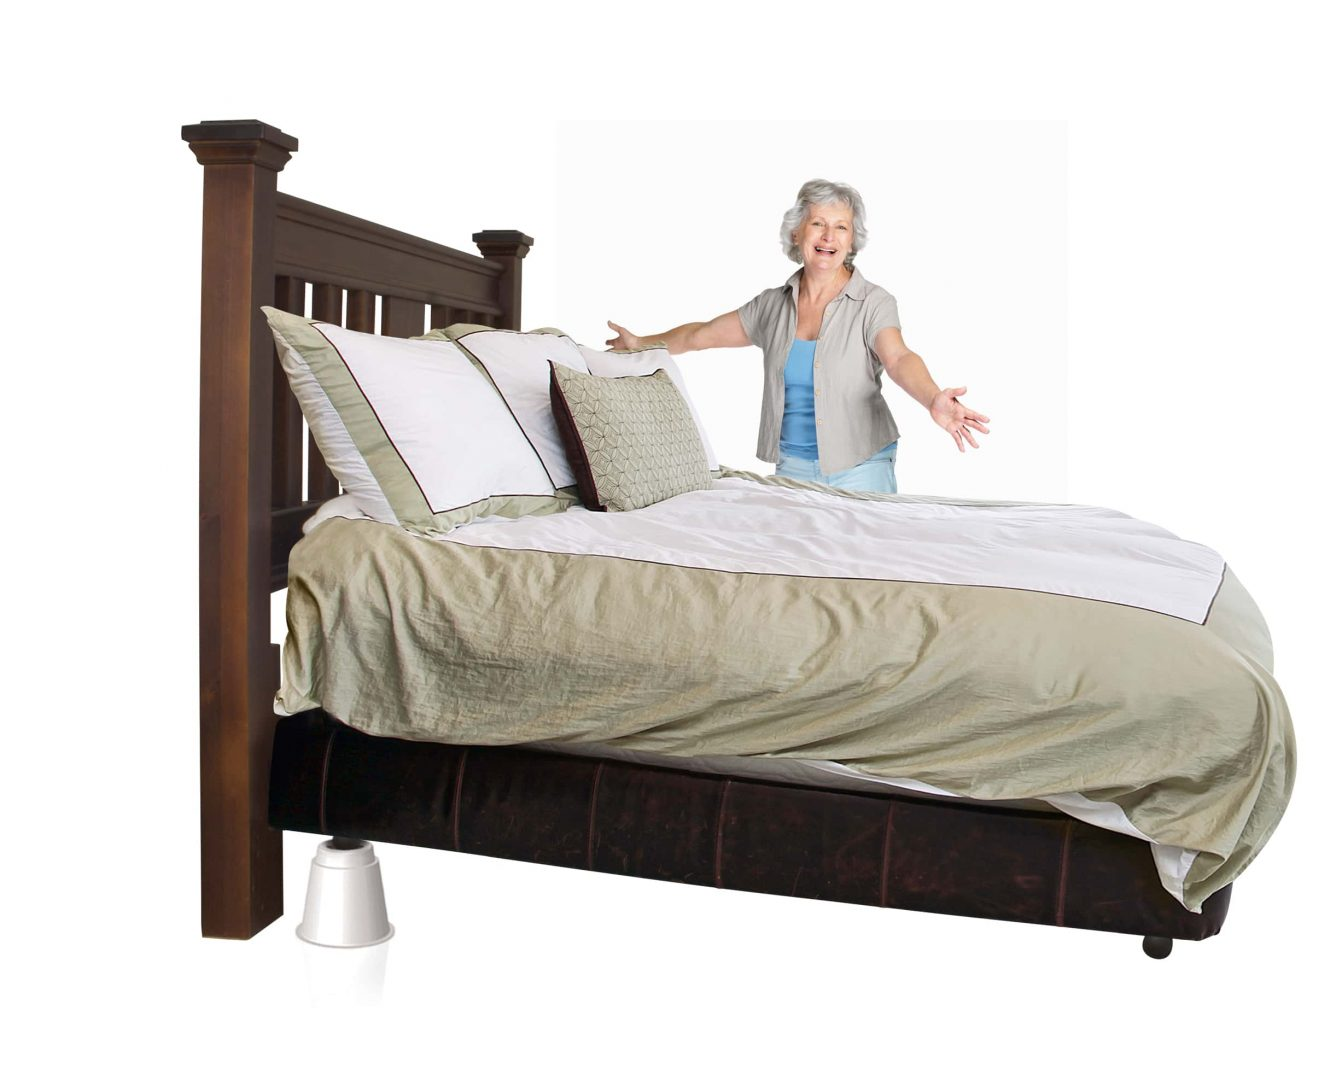 High Riser Bed 93 High Rise Bed Frame Queen 100 Bed Frames With